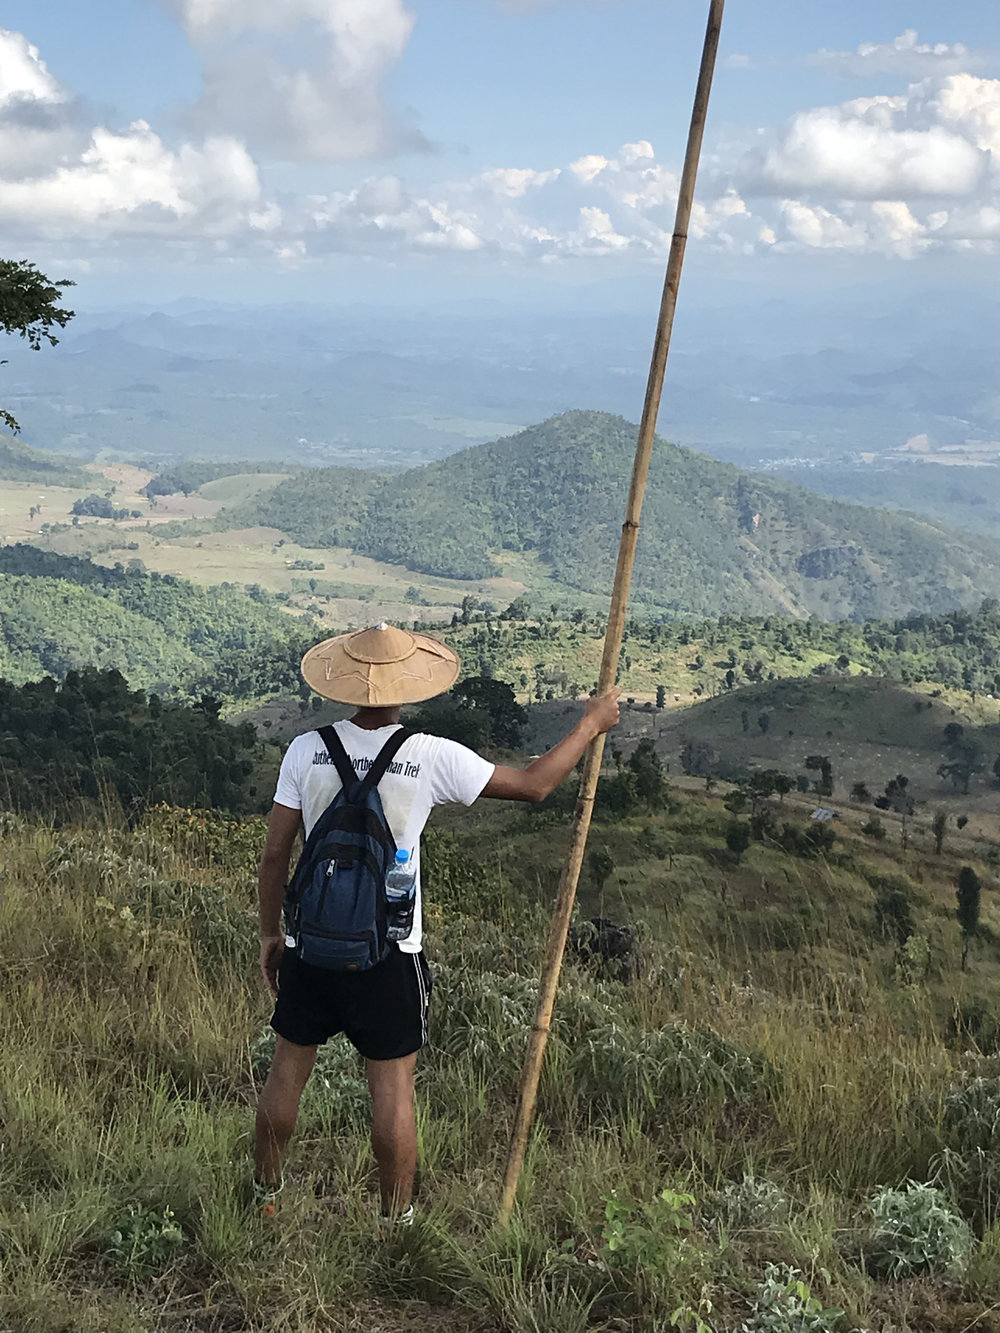 Our Hsipaw guide Sai posing with a large stick whose function wasn't totally clear